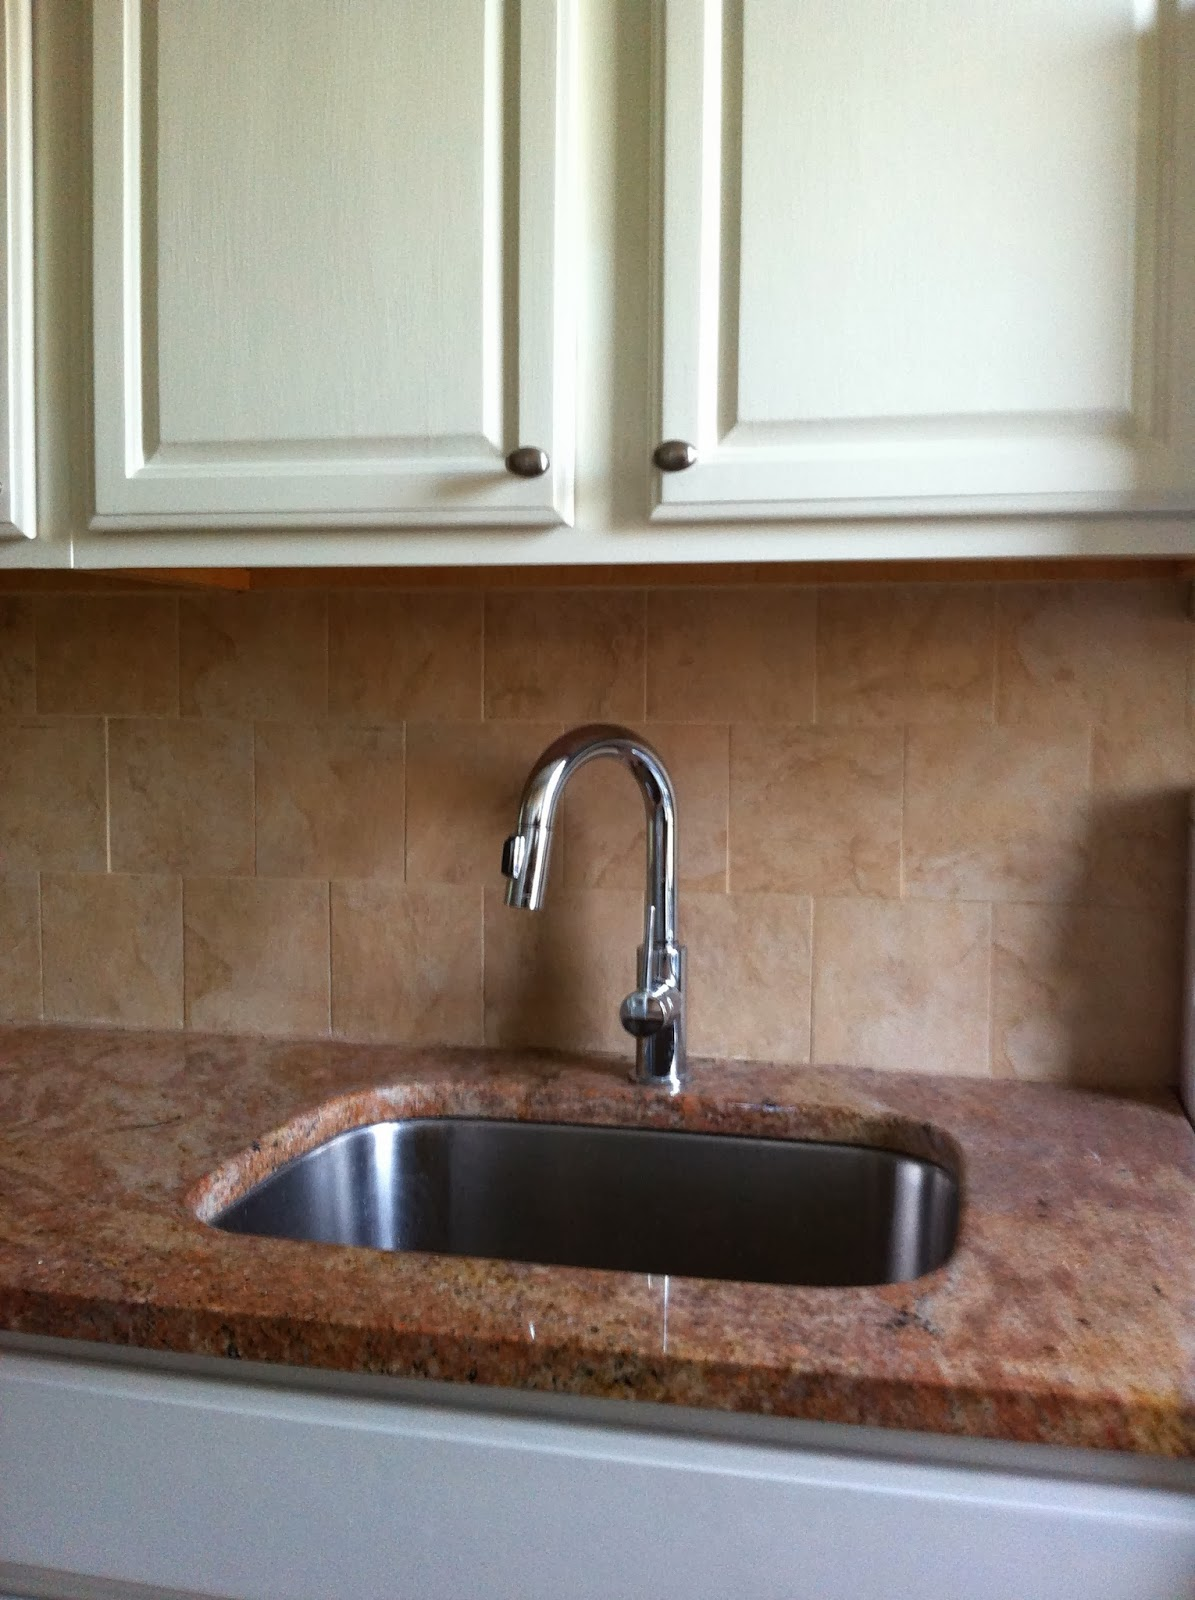 changing kitchen sink 2014 03 09 17 56 55 jpg 2081